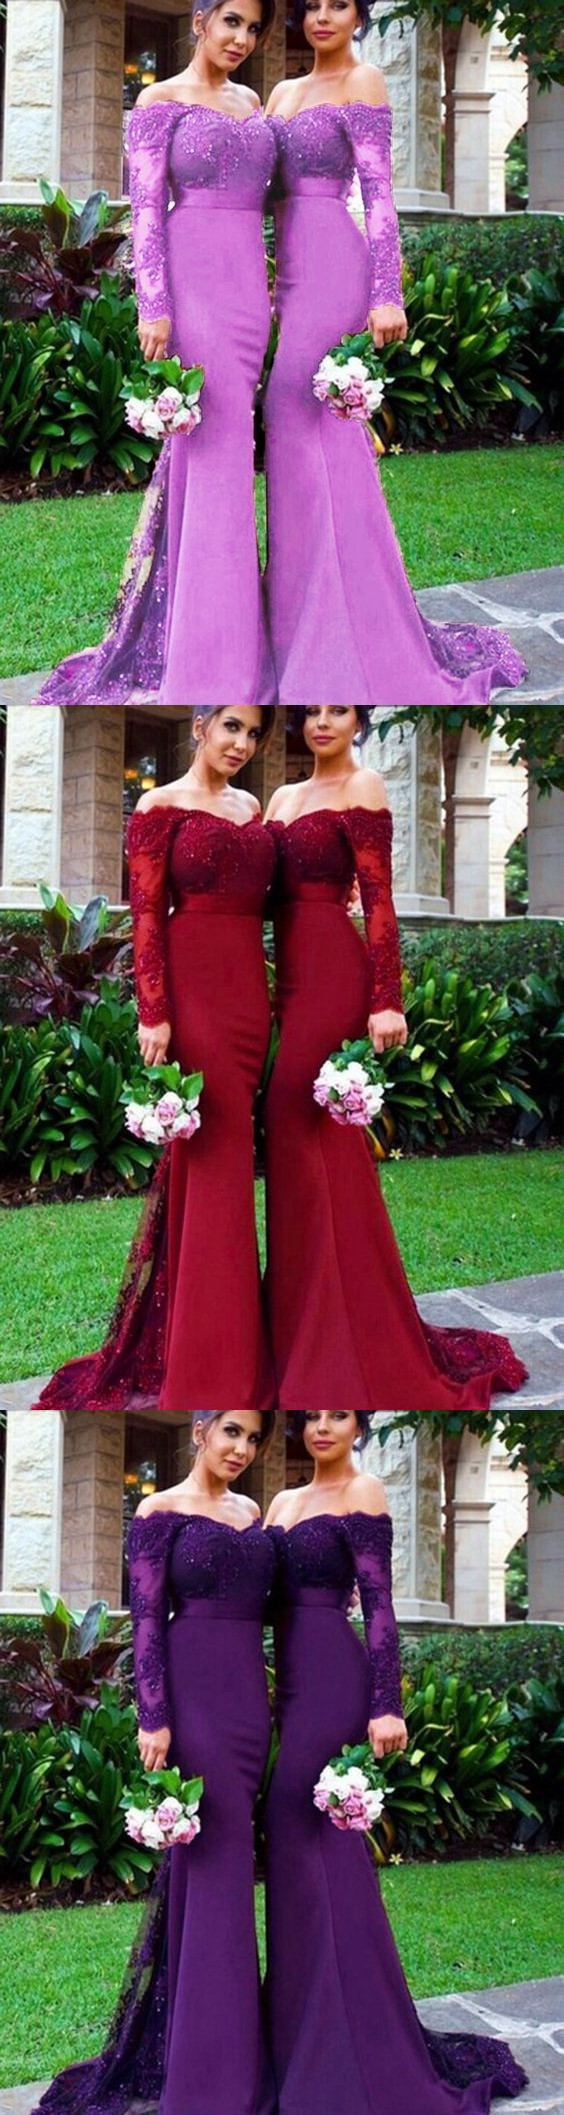 Vintage Women  Bridesmaid Dress with Long Sleeves for Wedding Party